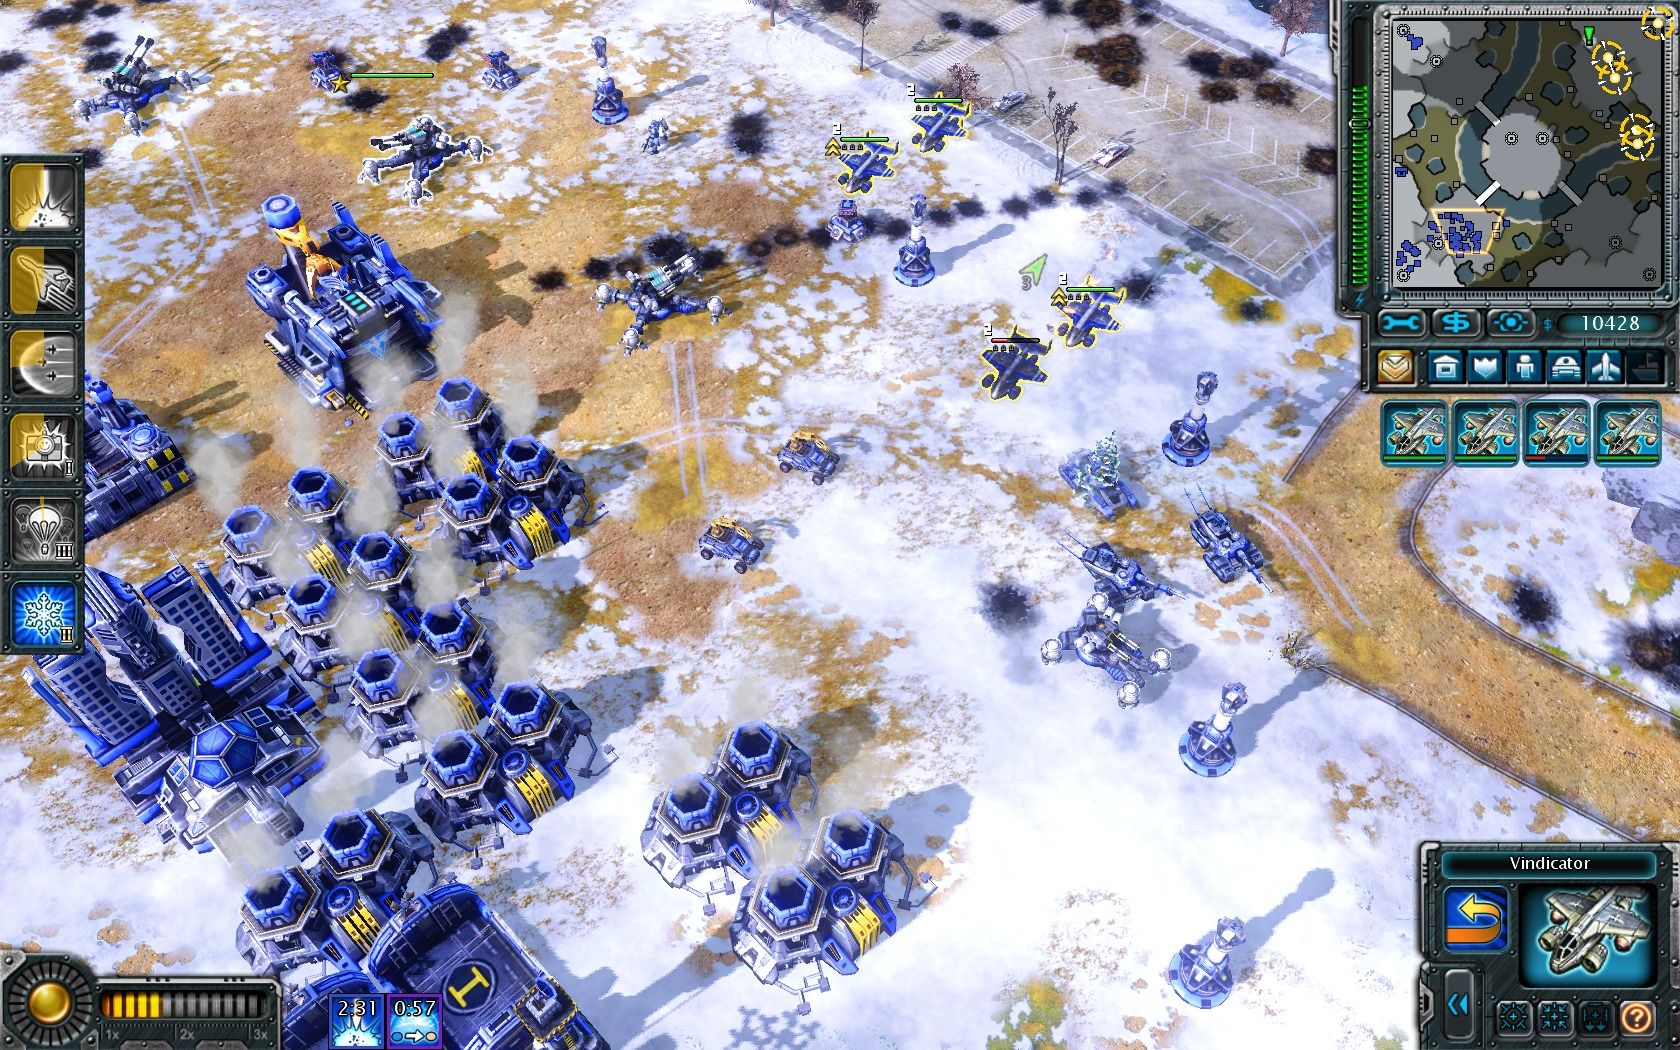 Command & Conquer: Red Alert 3 - Uprising Windows Fortifying your position against all kinds of attack.